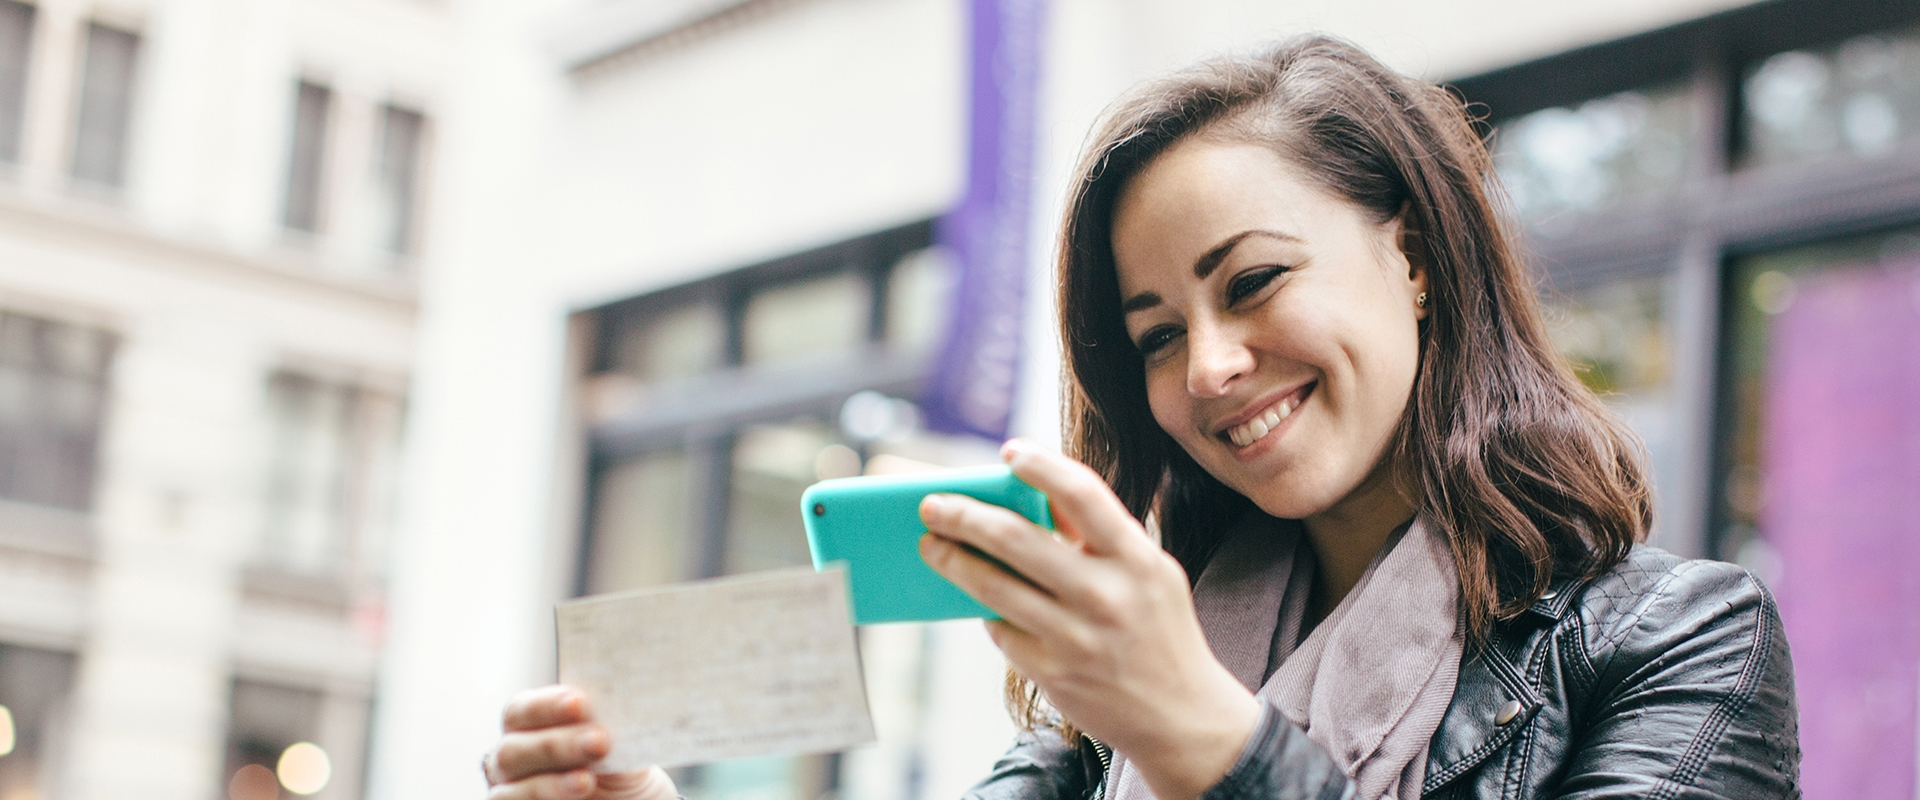 Female taking a picture of a check for mobile deposit Banner